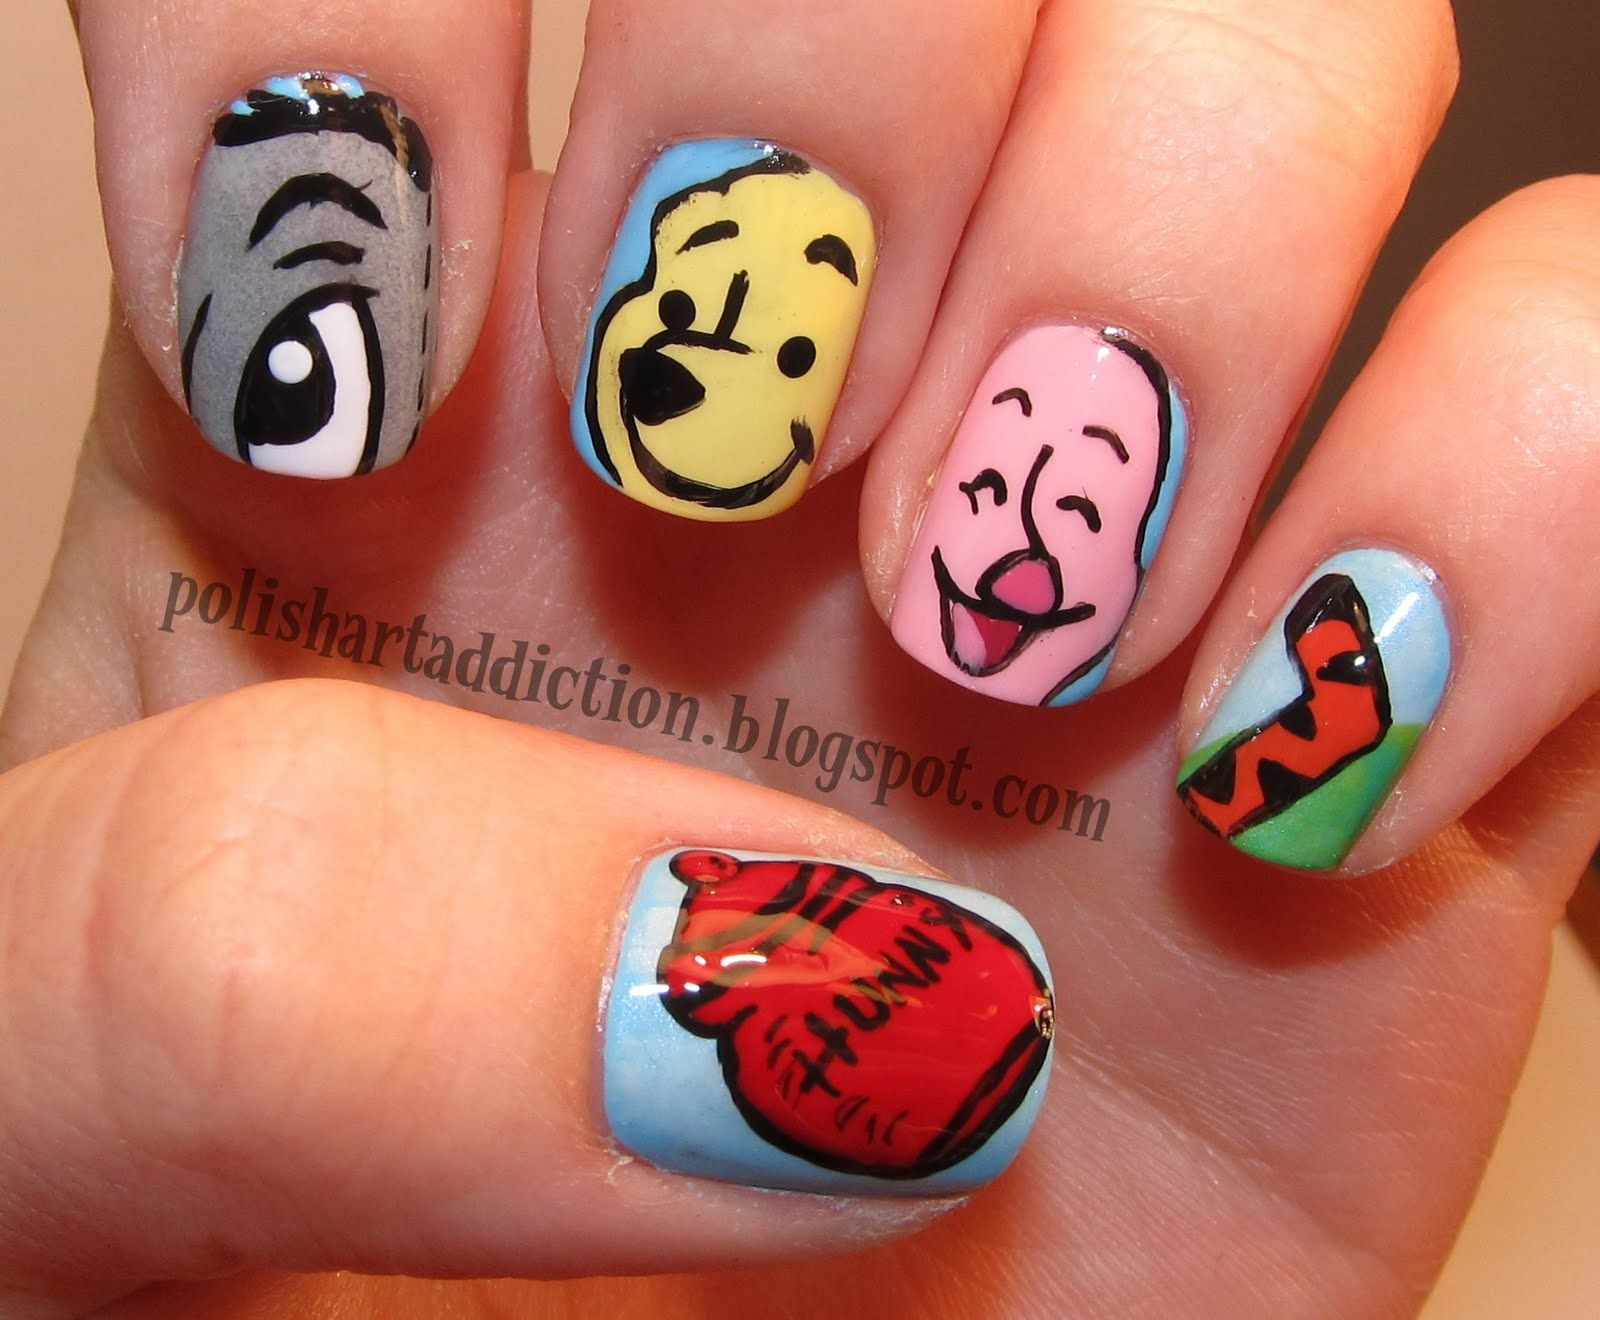 Winnie the Pooh is always close at hand | Nails | Pinterest ...